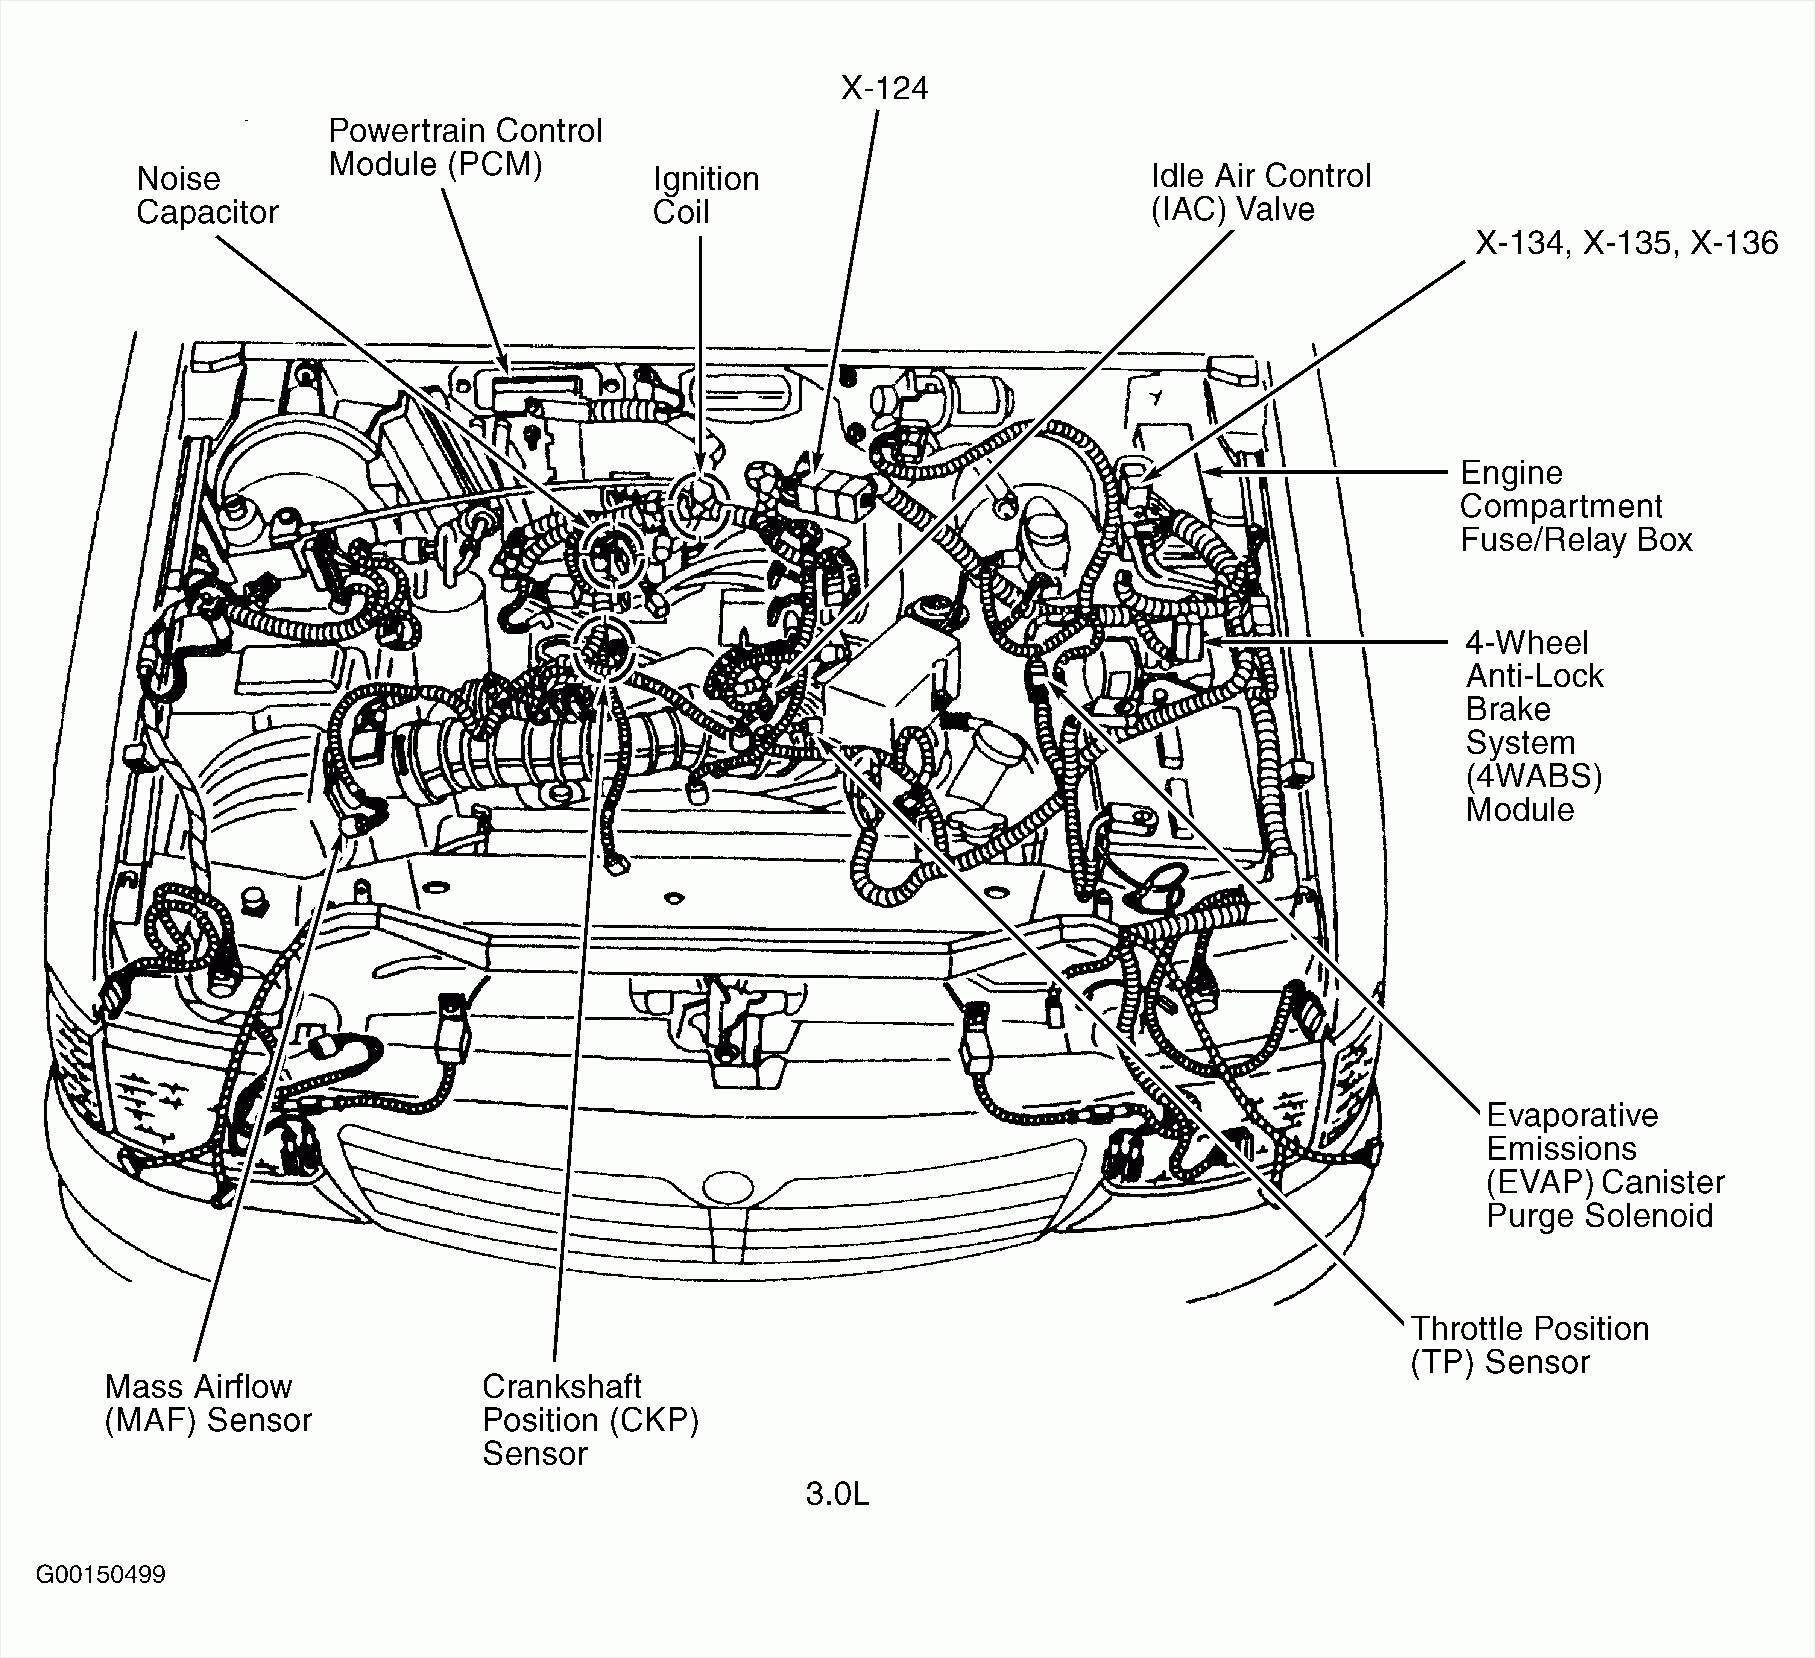 2005 Mustang V6 Engine Diagram Wiring Diagrams Recover Recover Chatteriedelavalleedufelin Fr